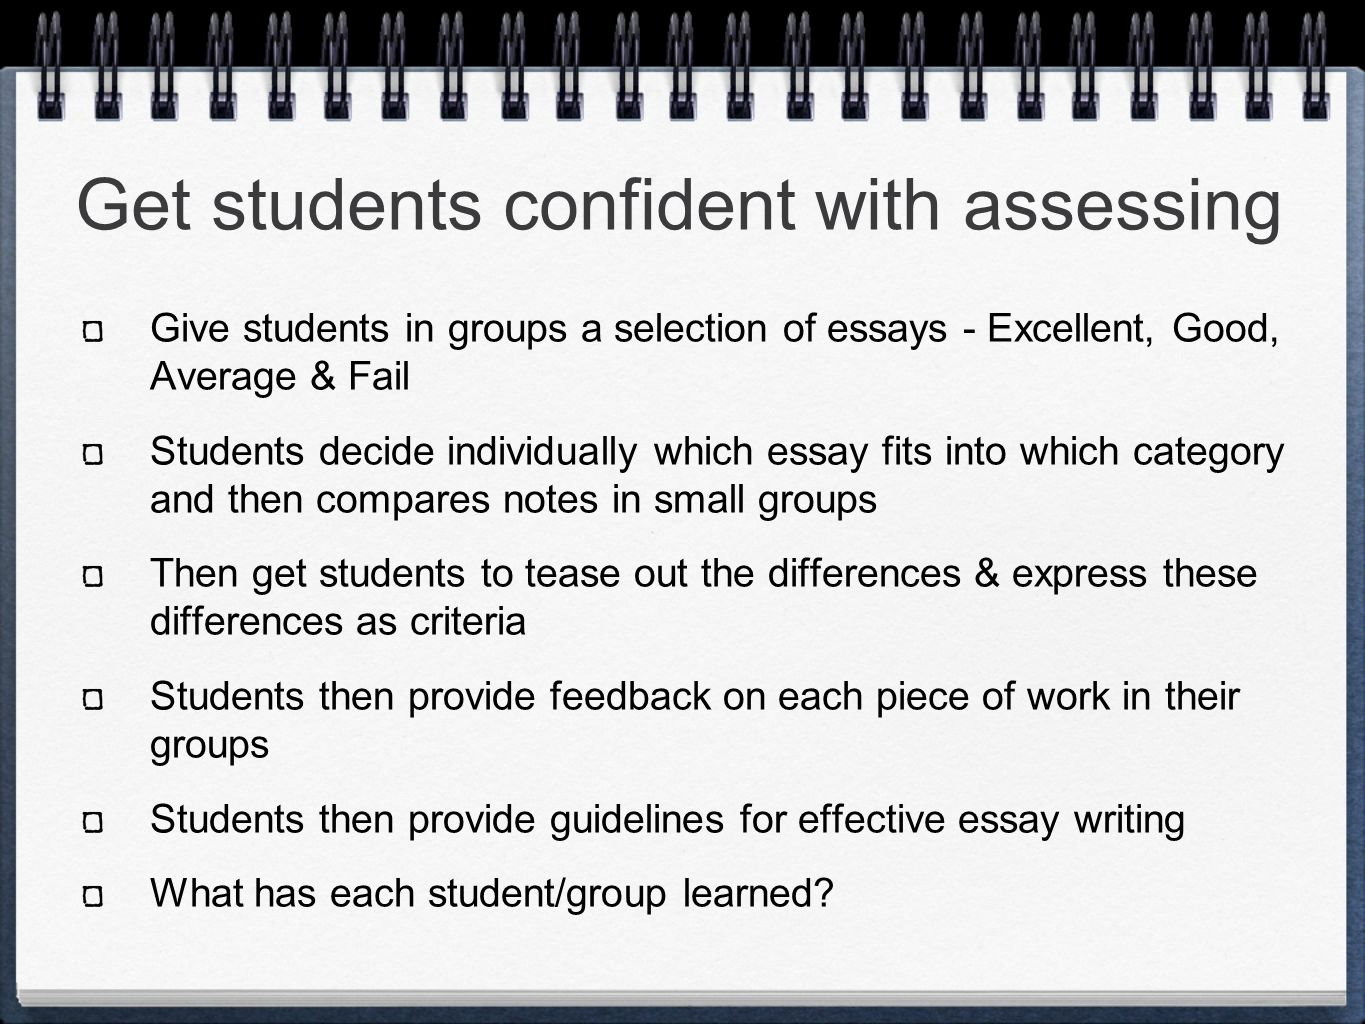 Get students confident with assessing Give students in groups a selection of essays - Excellent, Good, Average & Fail Students decide individually which essay fits into which category and then compares notes in small groups Then get students to tease out the differences & express these differences as criteria Students then provide feedback on each piece of work in their groups Students then provide guidelines for effective essay writing What has each student/group learned?